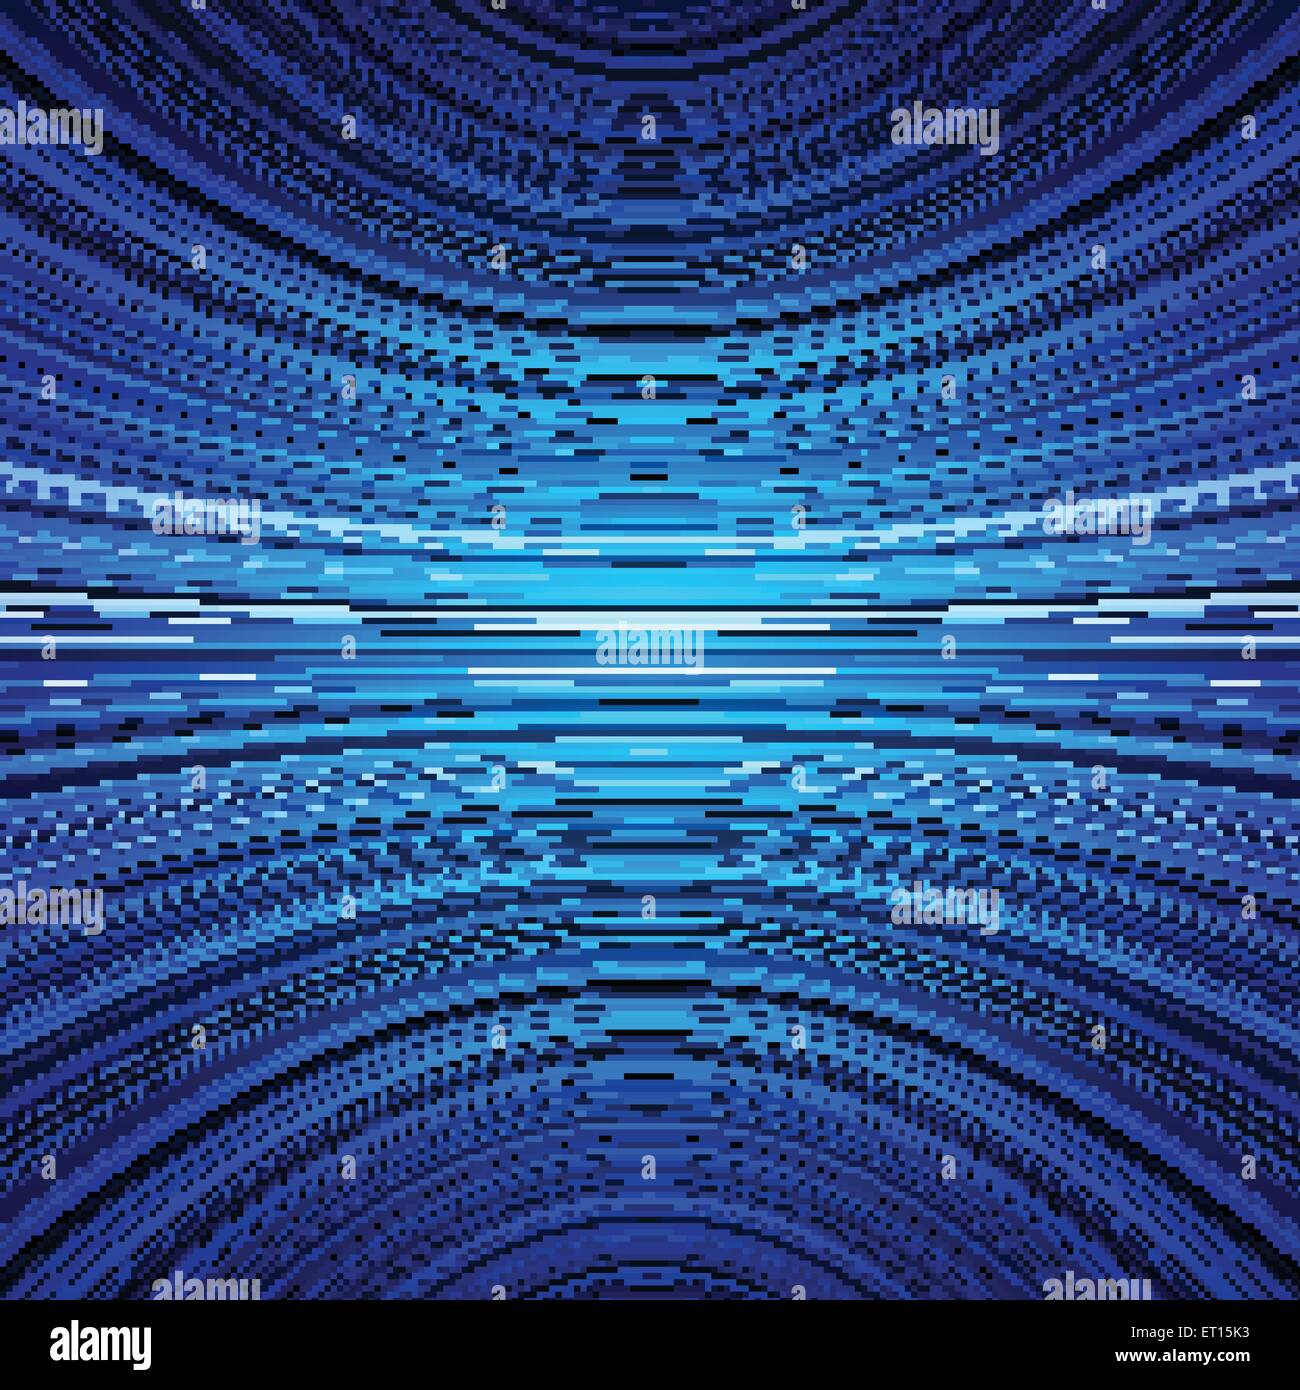 Abstract blue warped stripes background. RGB EPS 10 vector illustration - Stock Image